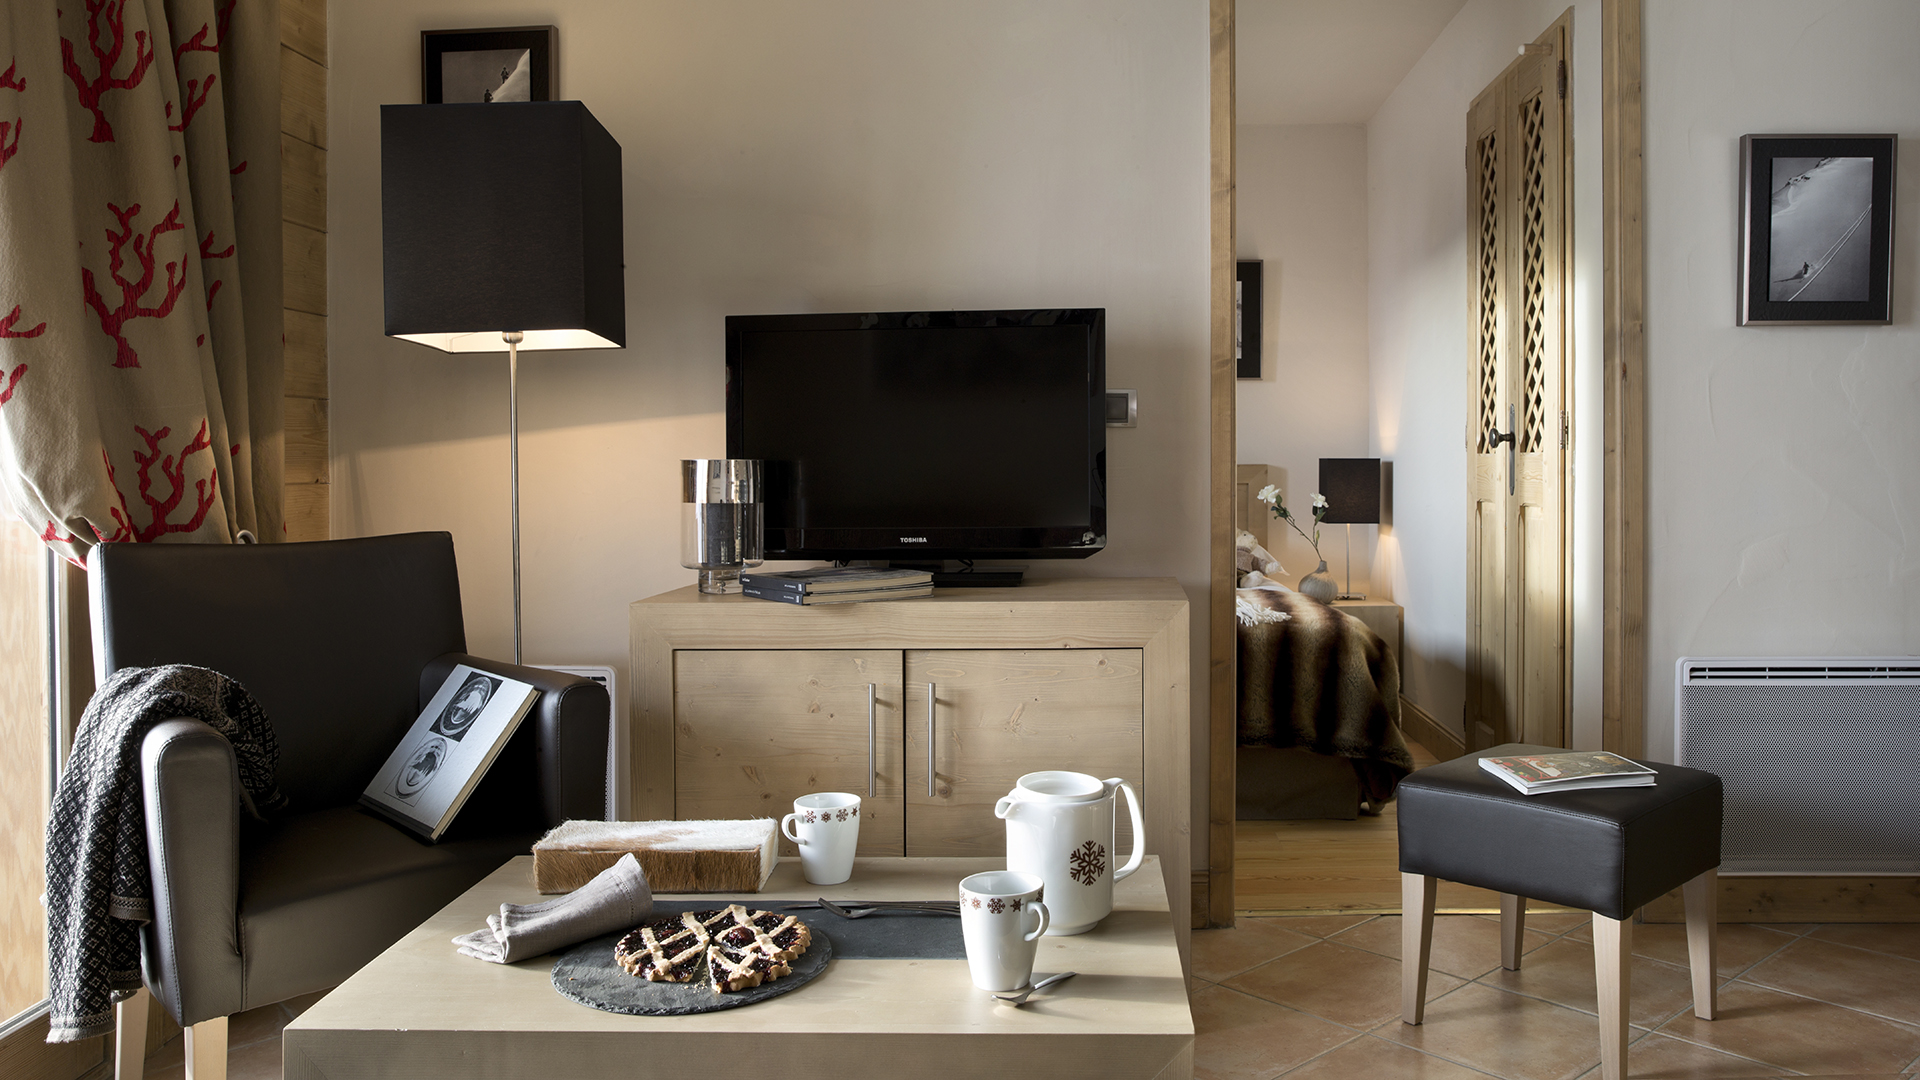 les chalets de l ana holiday apartment in les carroz cgh residences. Black Bedroom Furniture Sets. Home Design Ideas